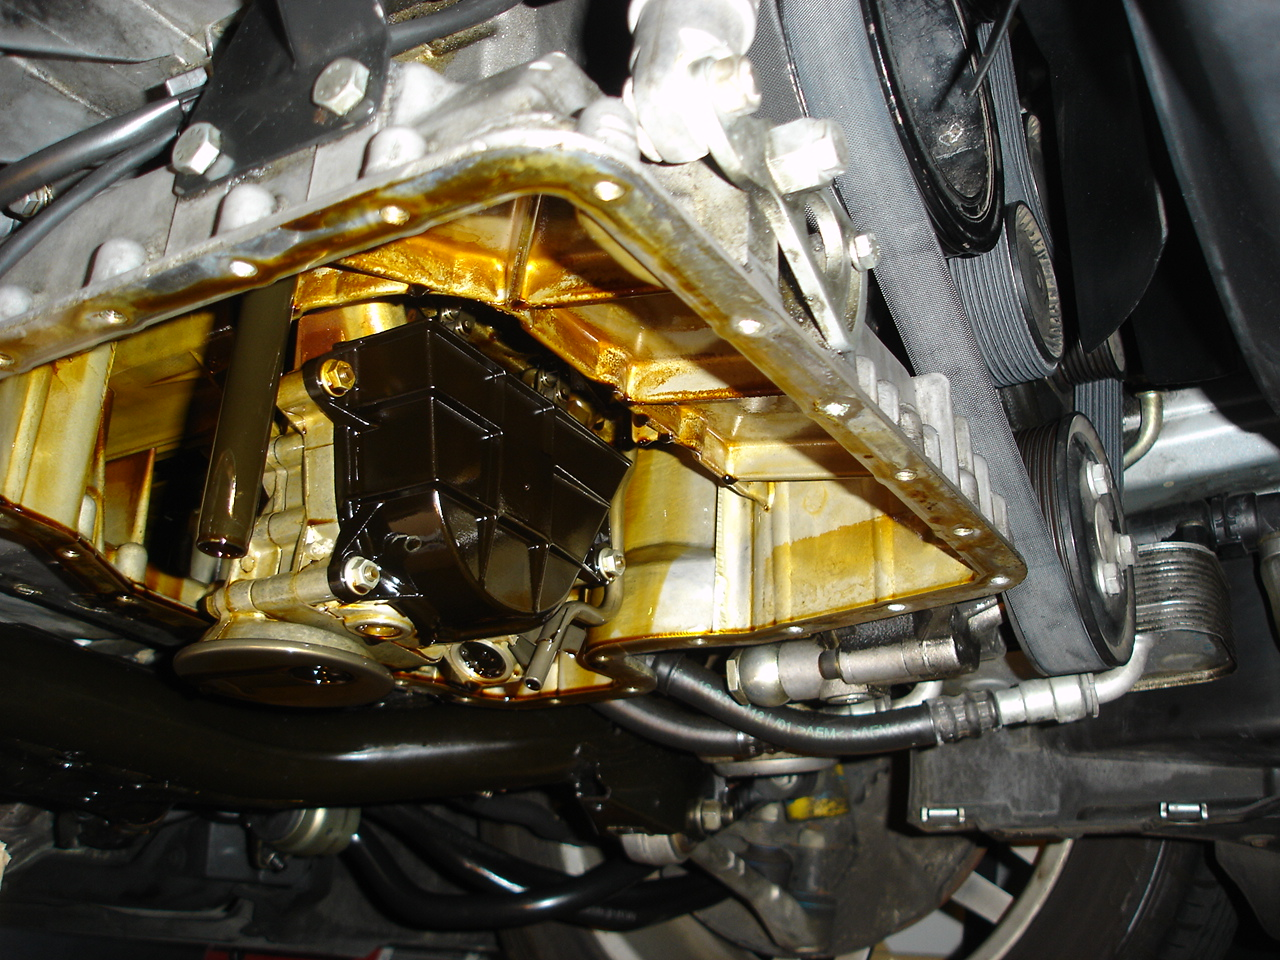 2008 saab 9 3 wiring diagram cell phone parts oil pan location, saab, get free image about